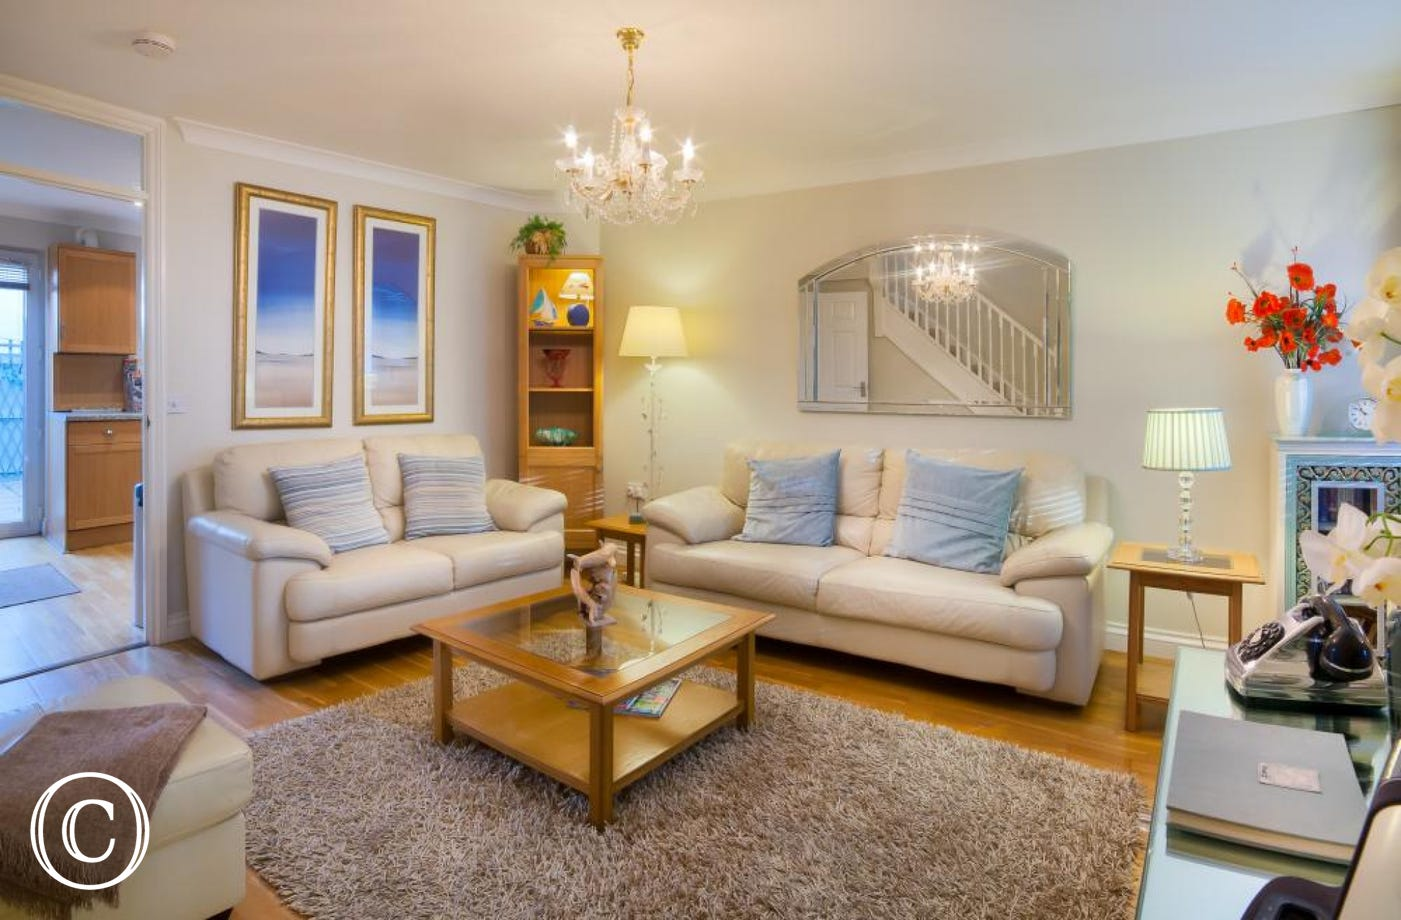 Living Room at Beach Mews Self-Catering Holiday Cottage Torquay in Torbay, South Devon.